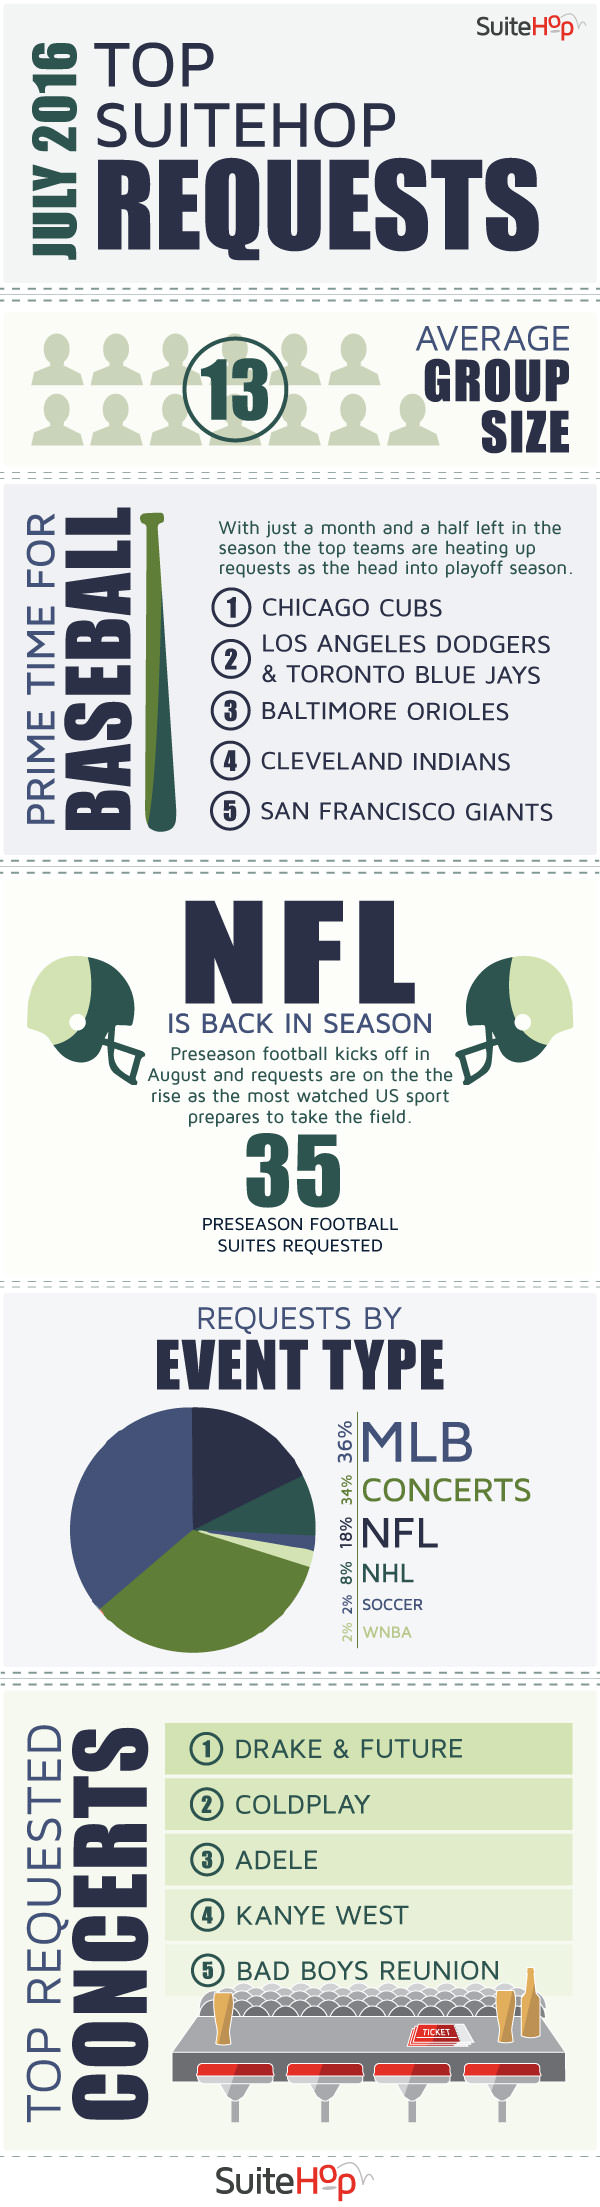 SuiteHop presents the top suite event requests for July with this infographic.